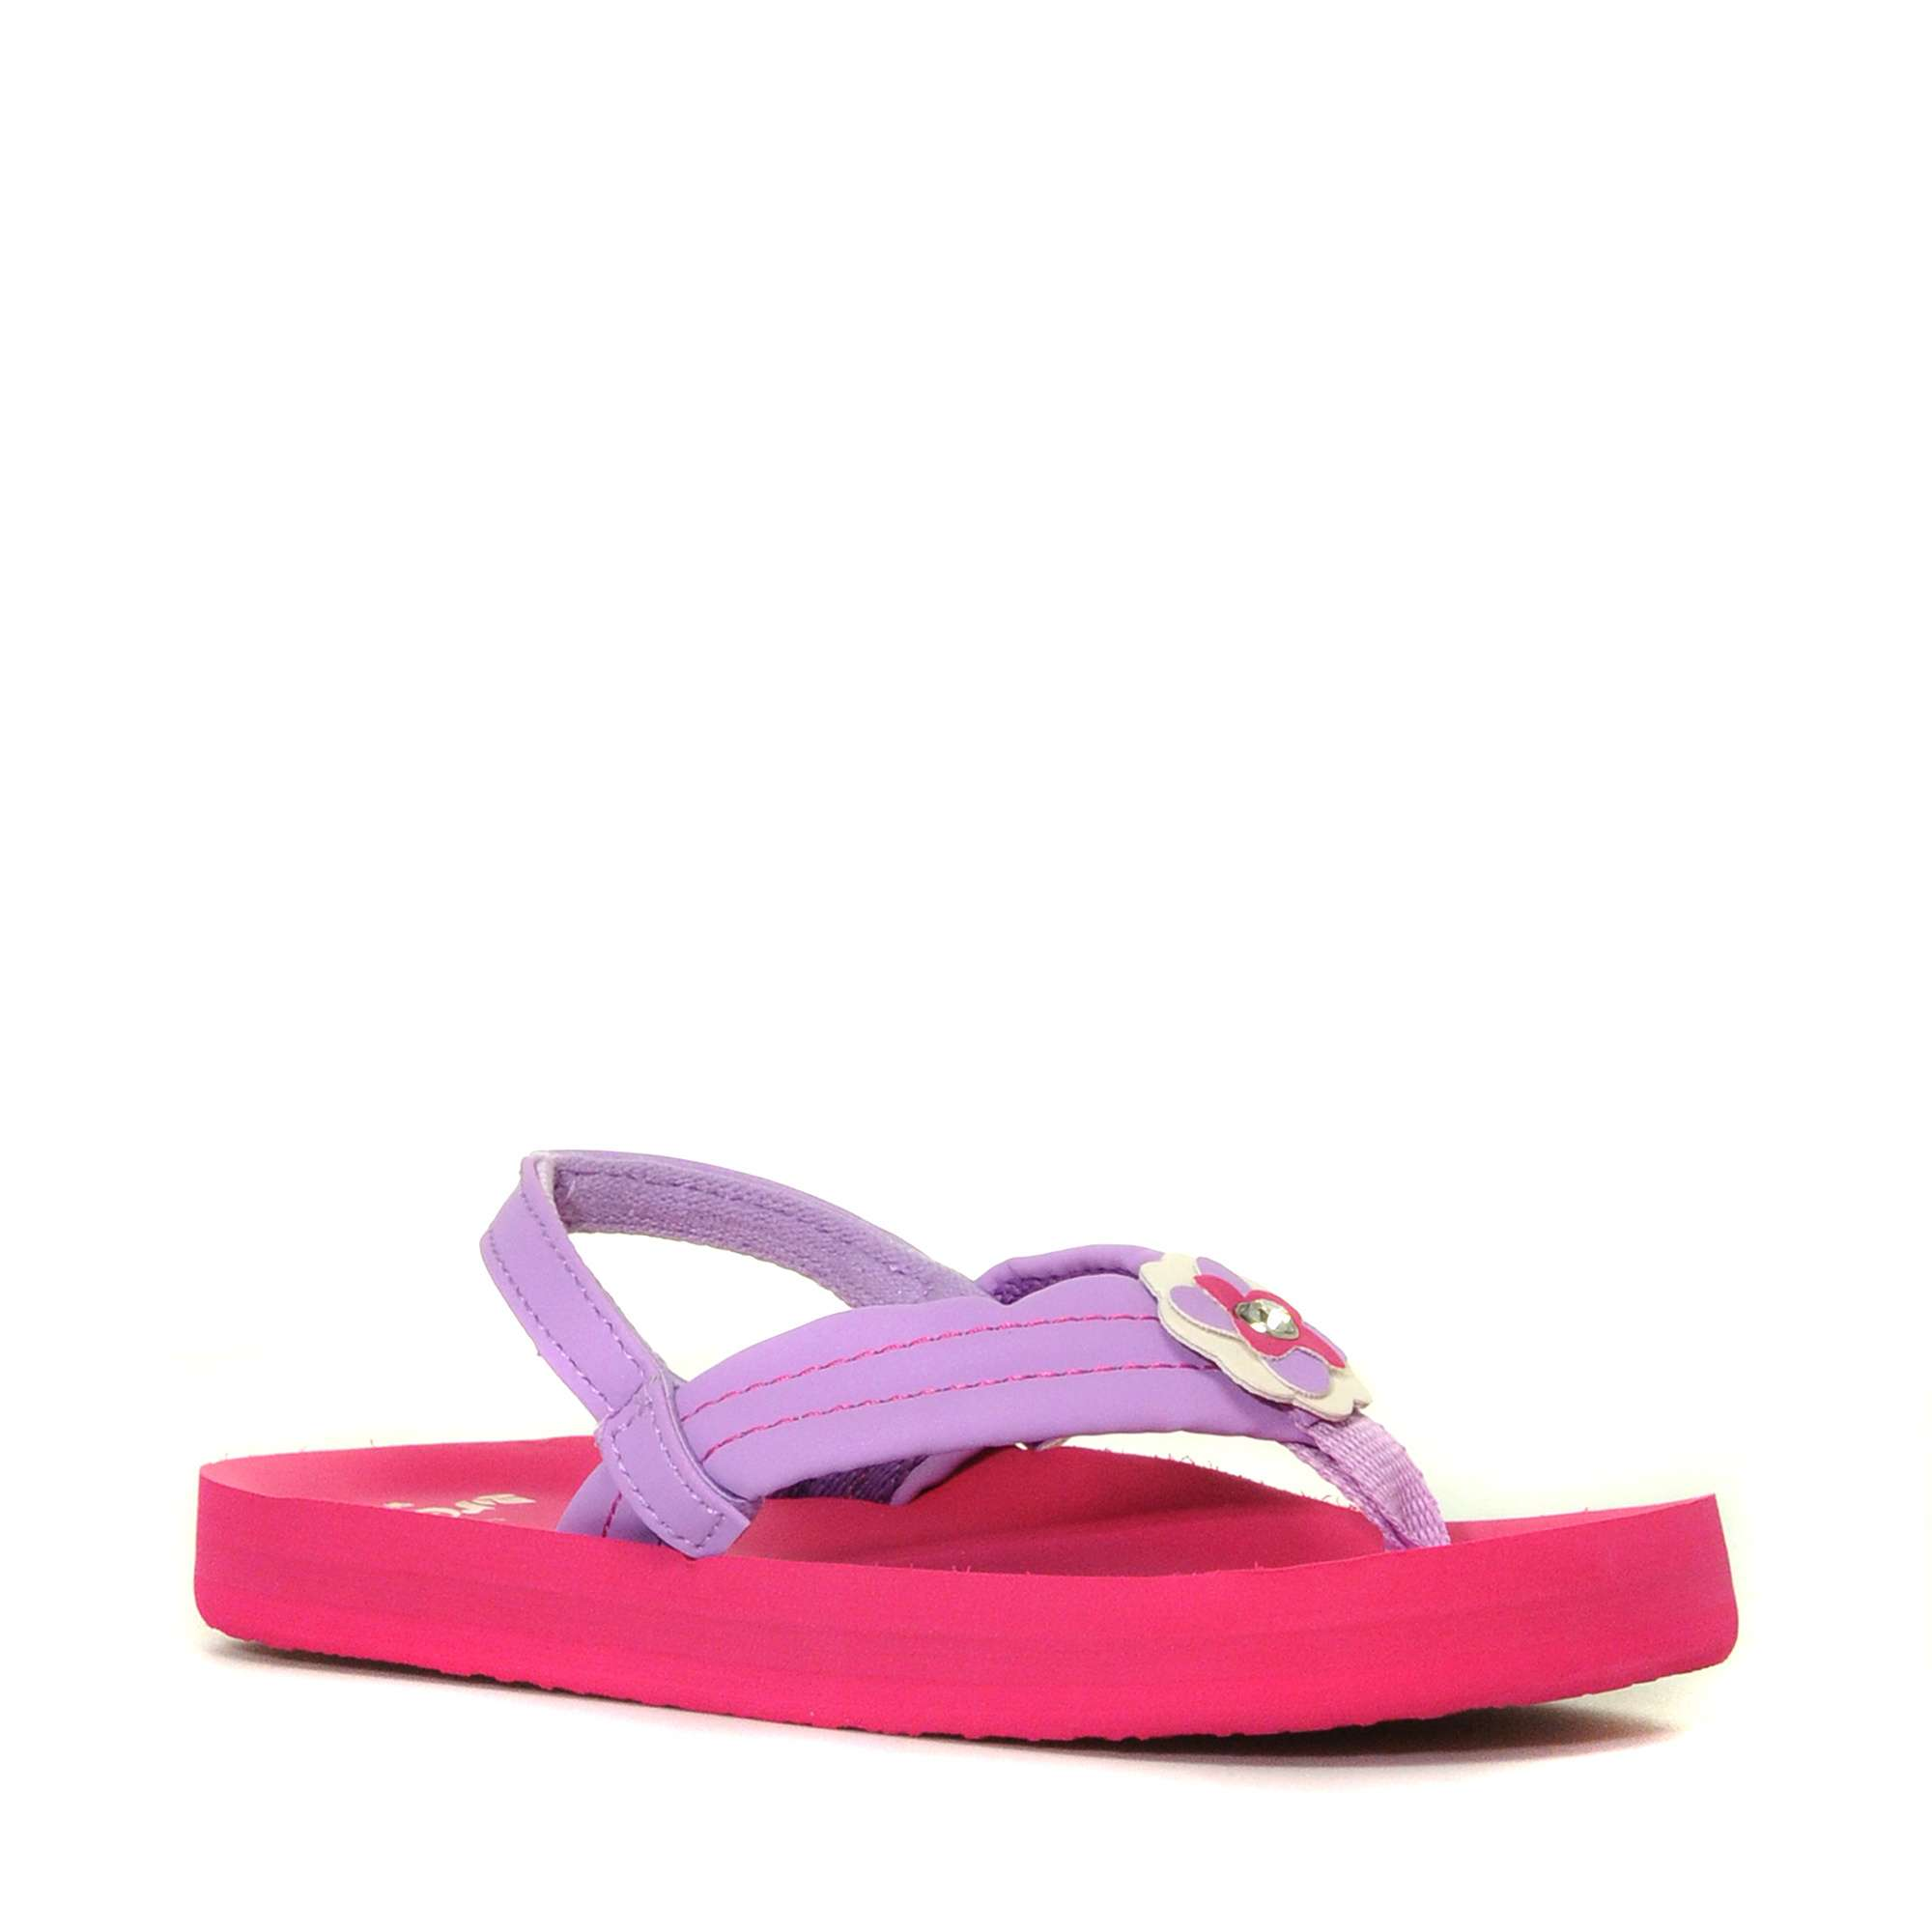 REEF Kids' Little Ahi Sandal